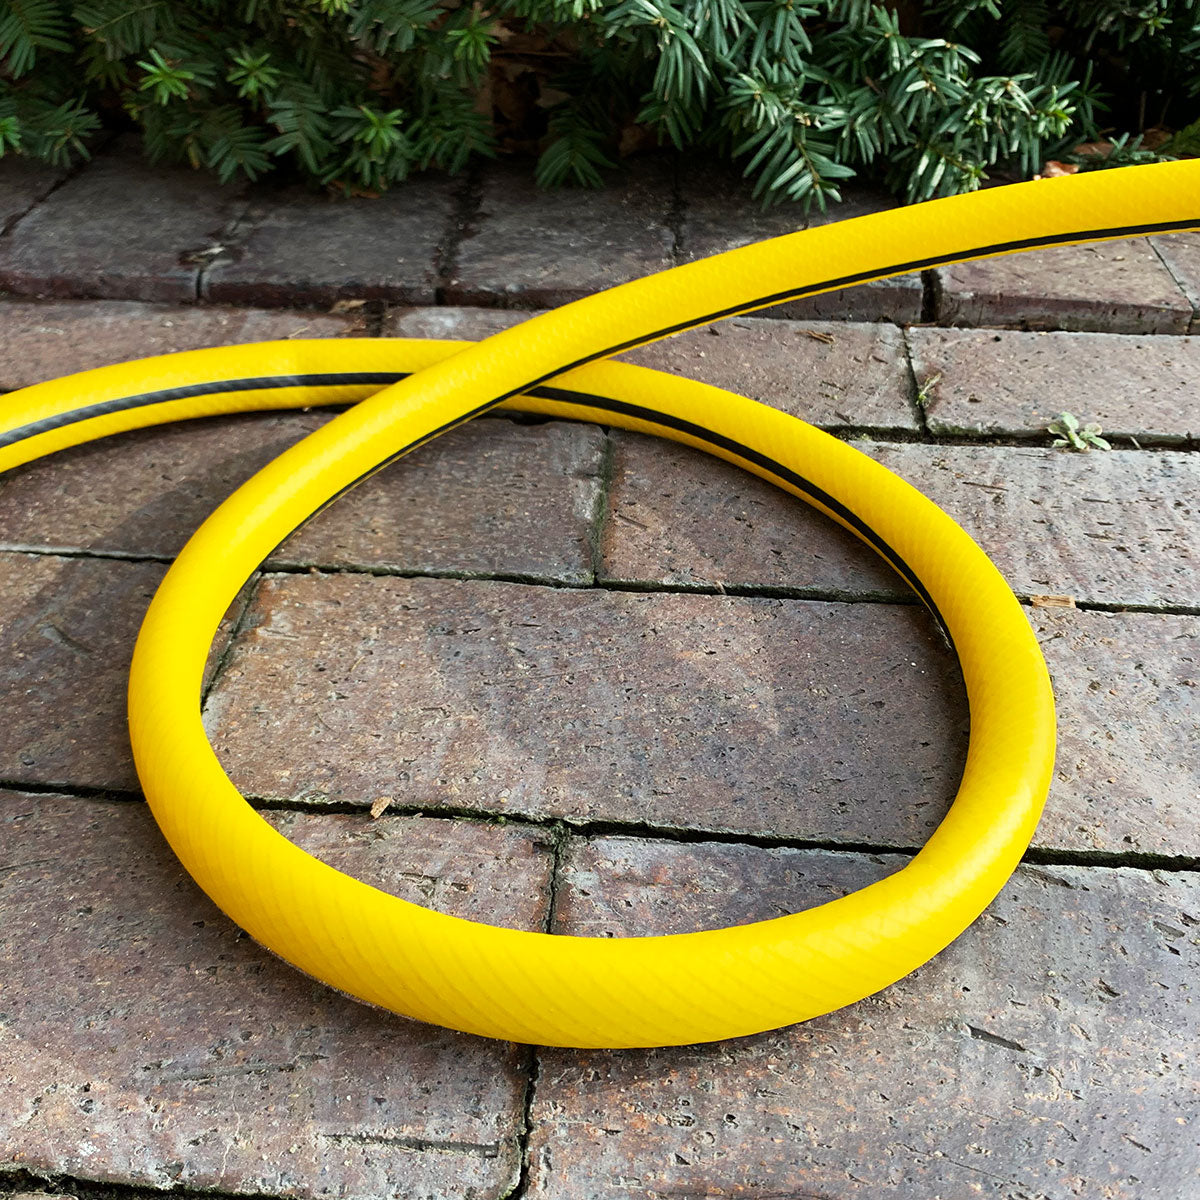 Ray Padula hybrid hose superflex